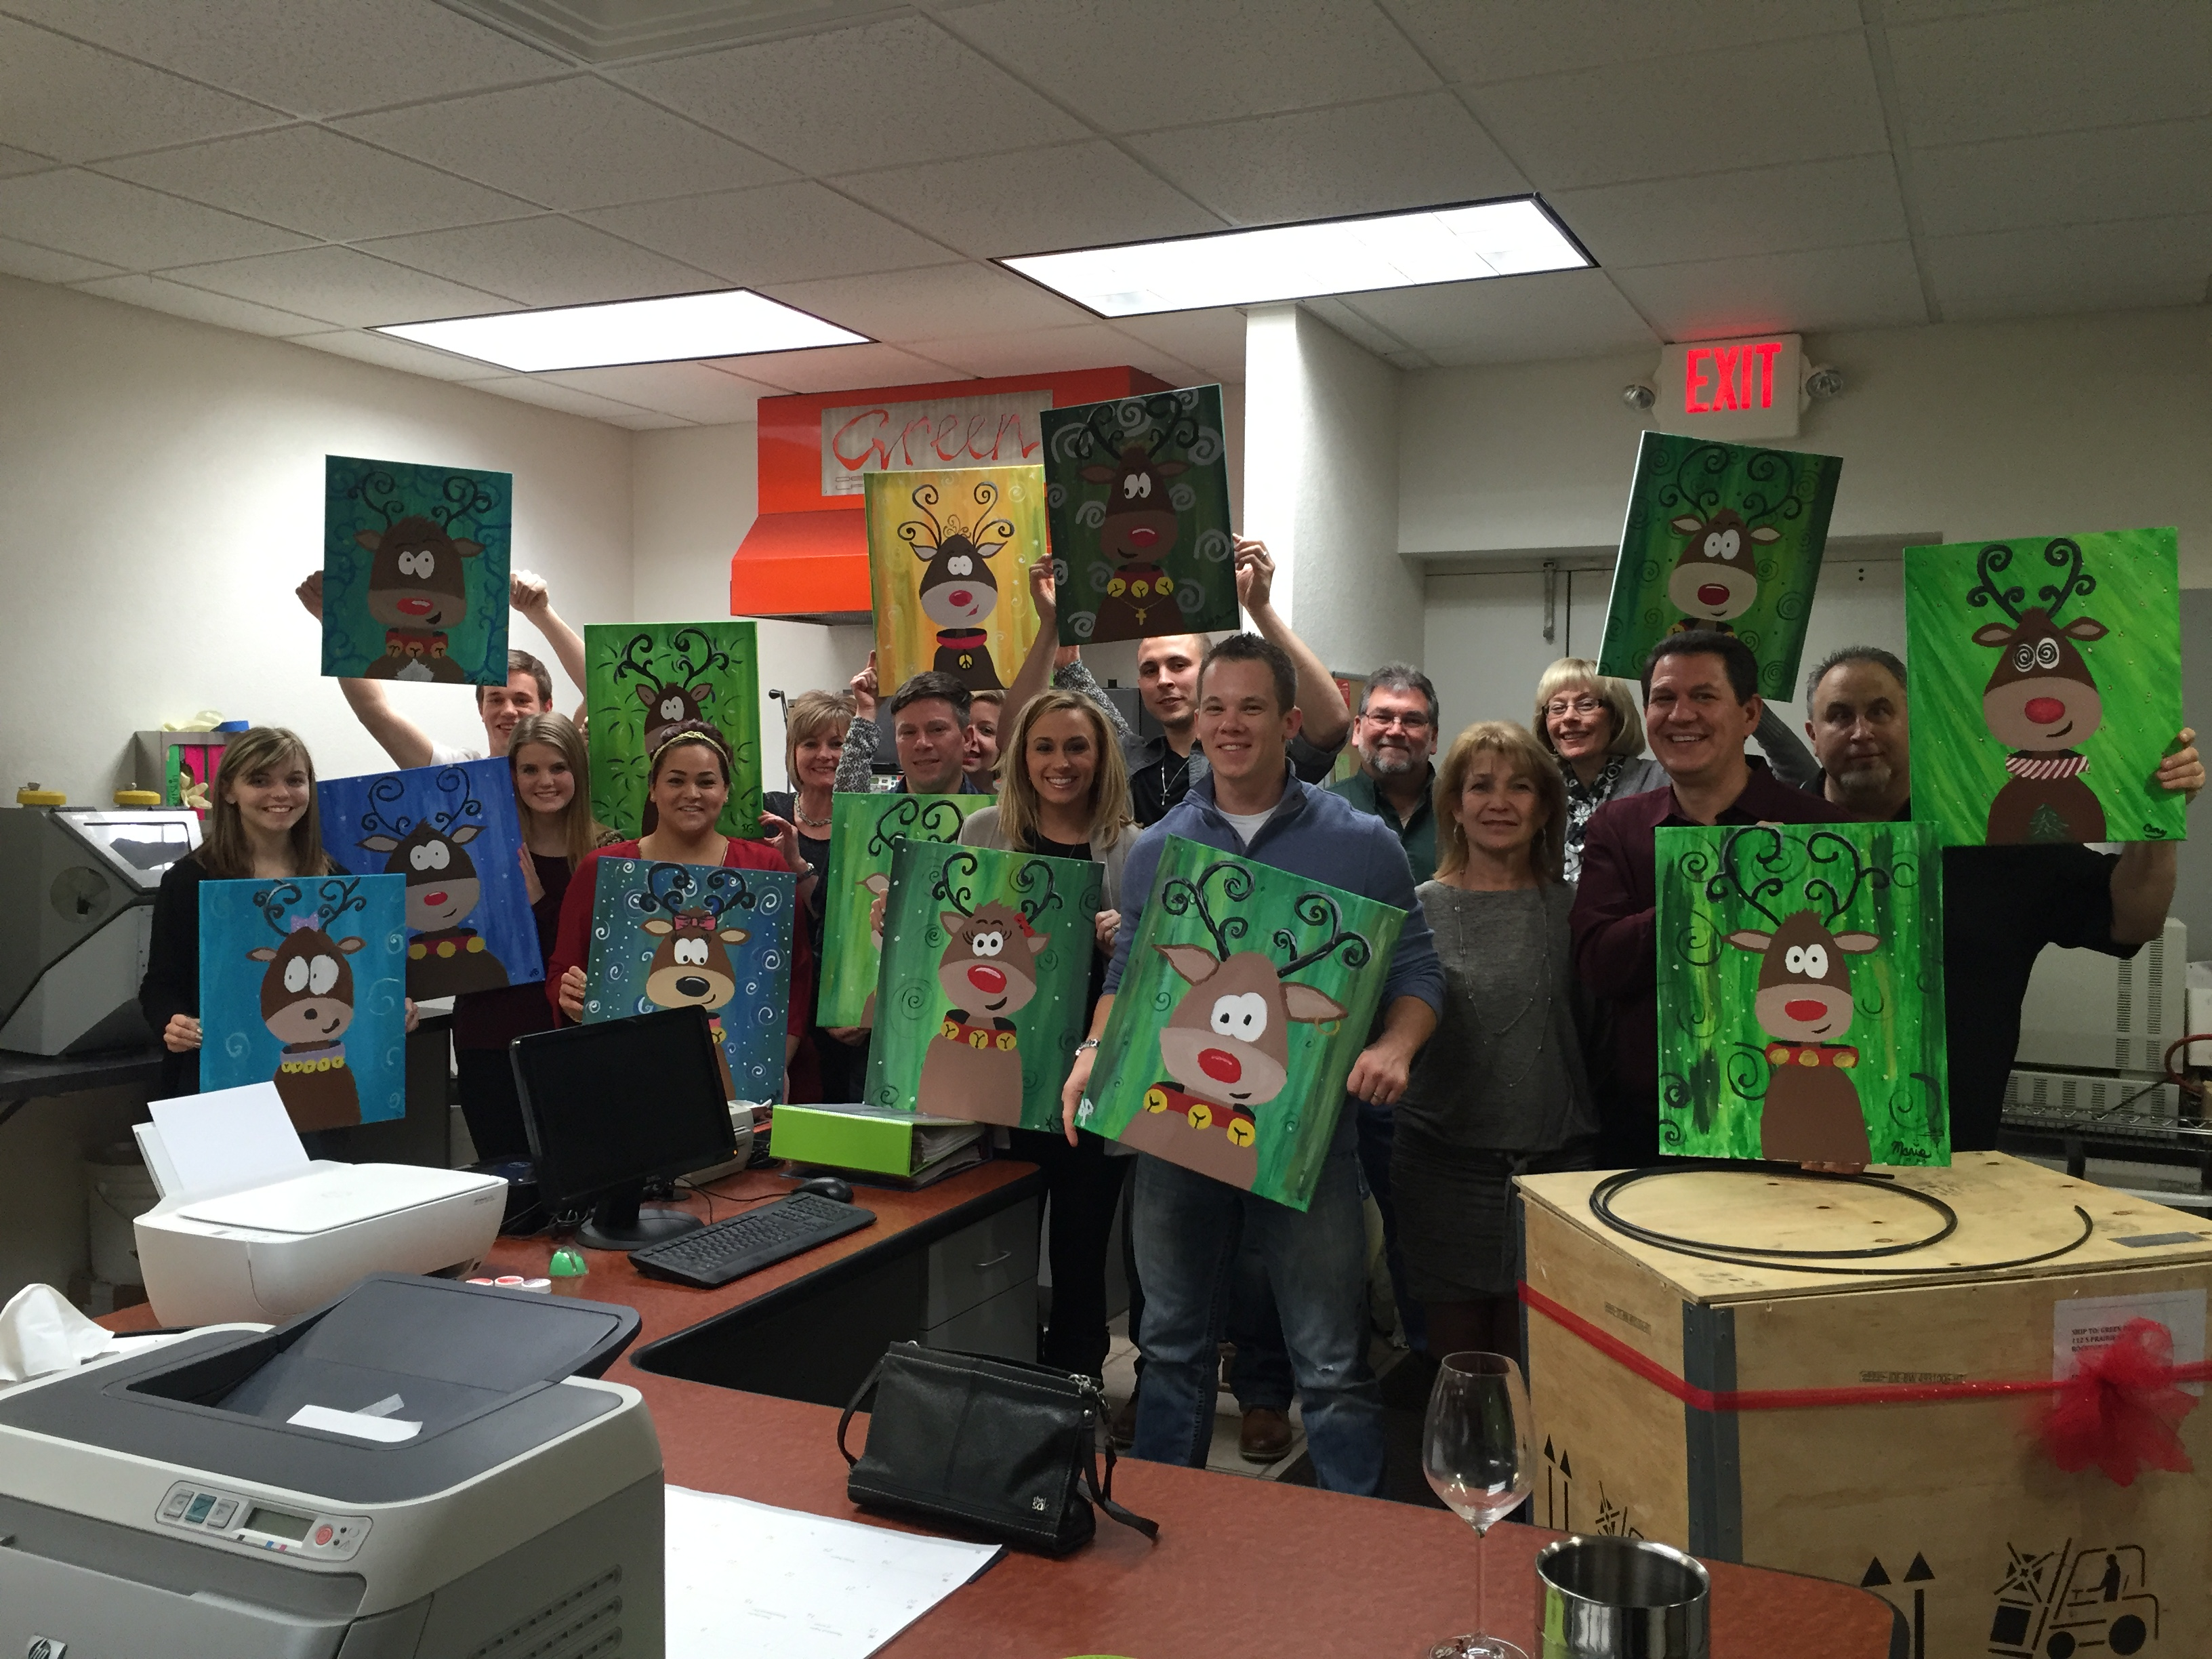 Private Office Party for Green Dental Lab. They got into the Festive Spirit by painting Reindeers! 12/19/15